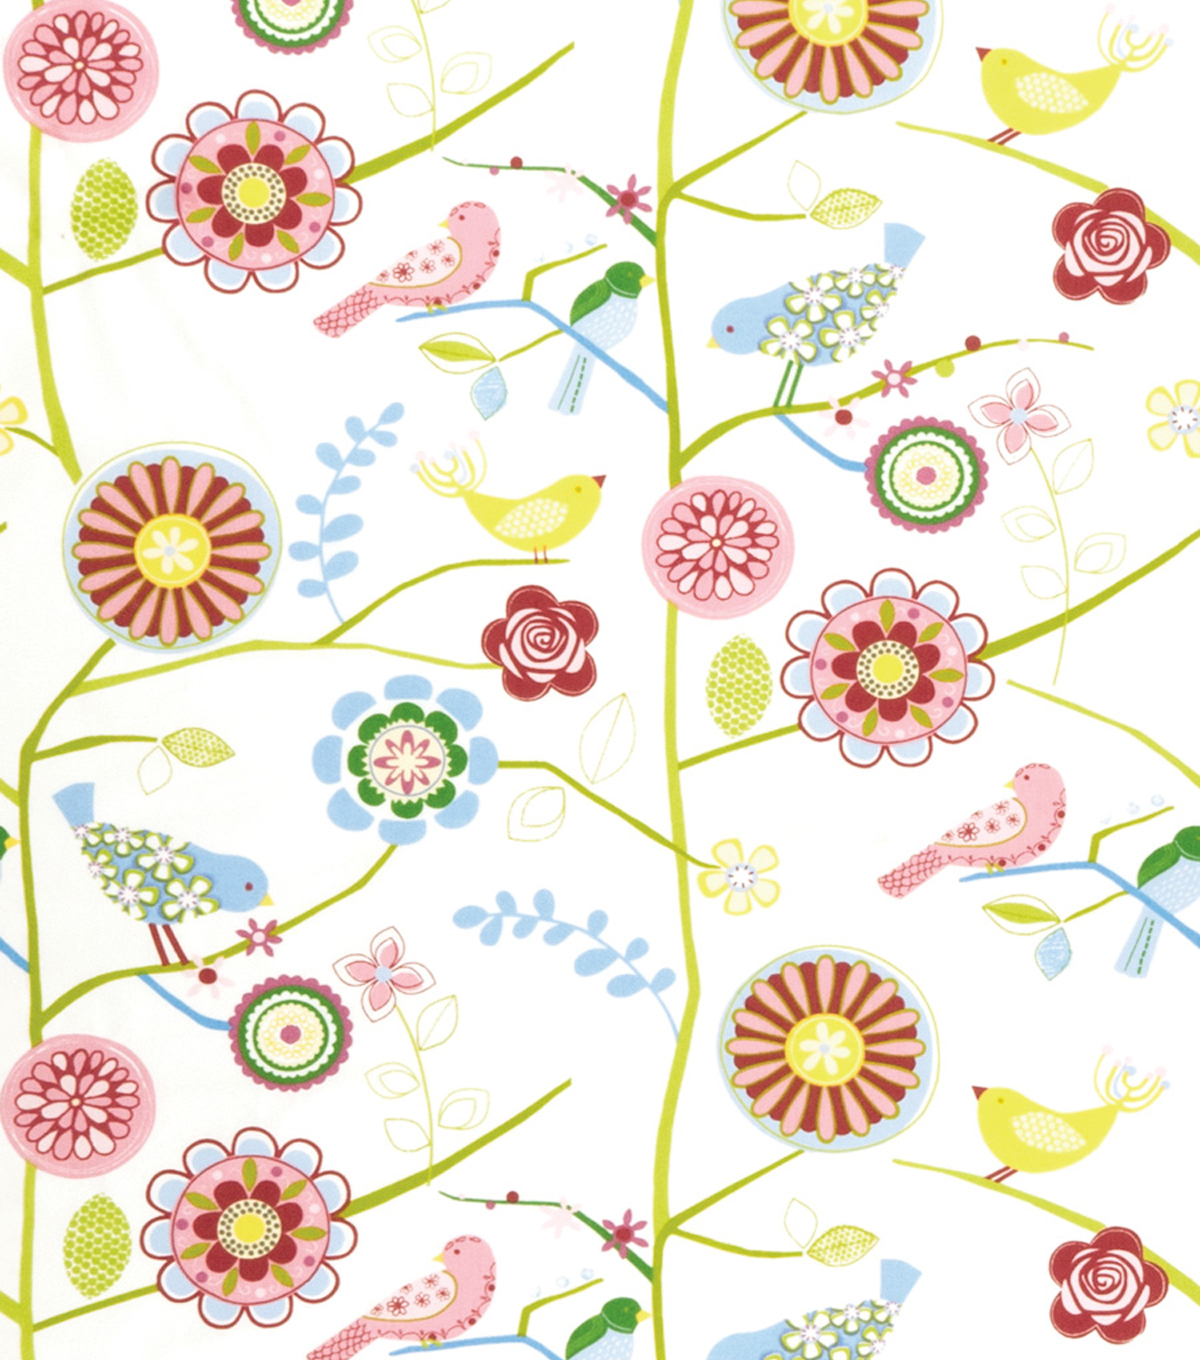 Home Decor 8\u0022x8\u0022 Fabric Swatch-Print Fabric Eaton Square Draw  Parfait